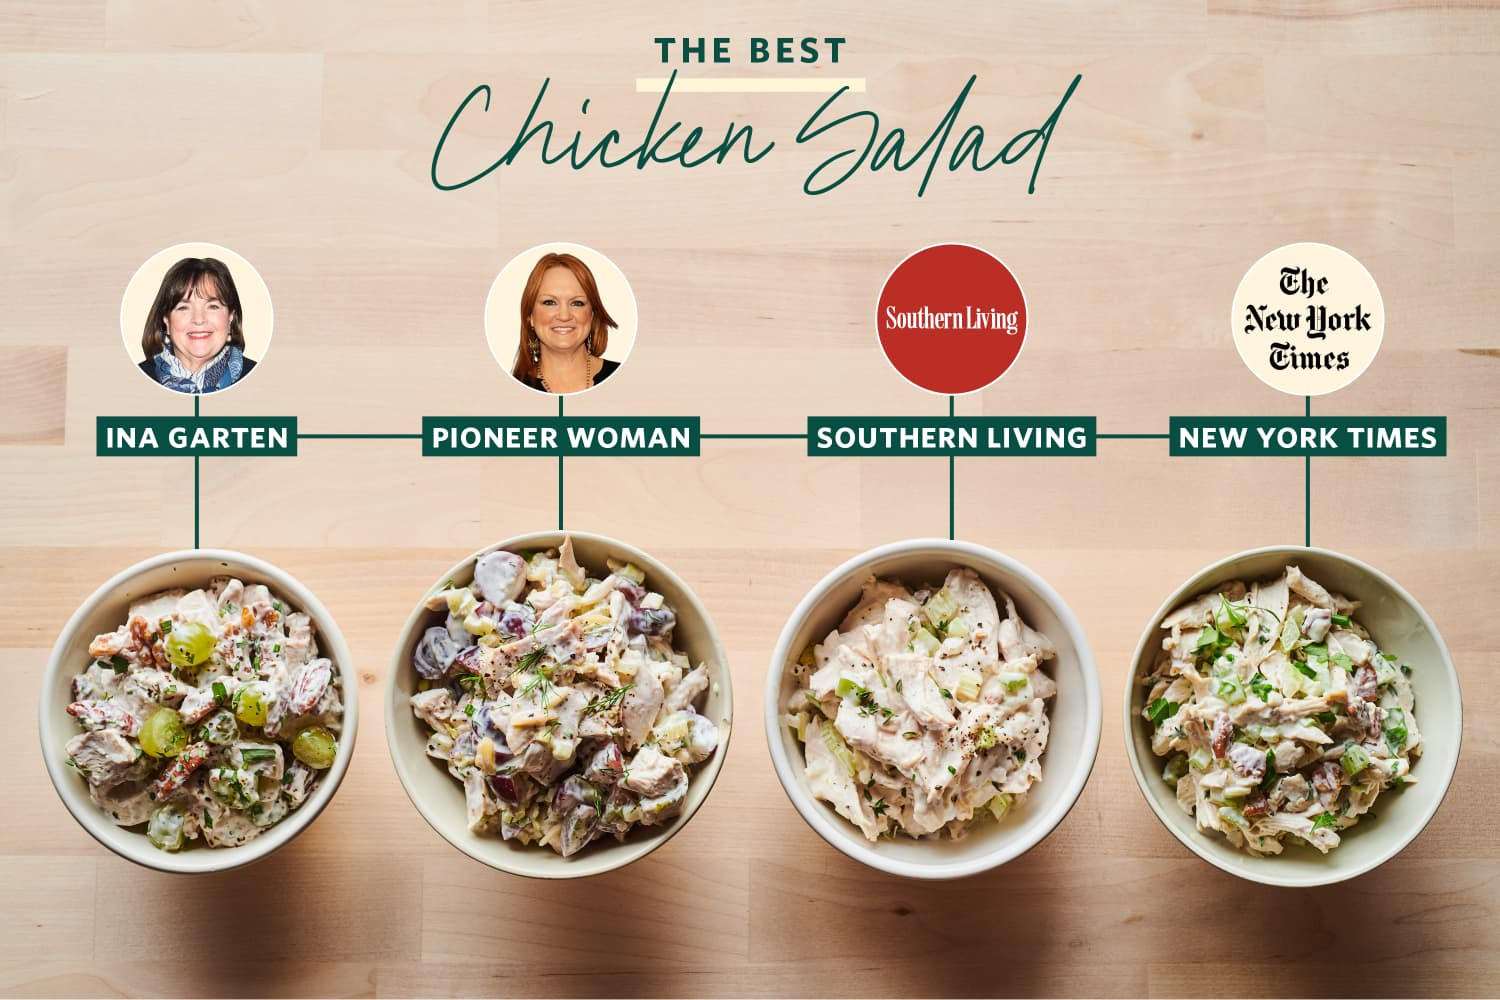 We Tested 4 Famous Chicken Salad Recipes and Did Not Expect These Results